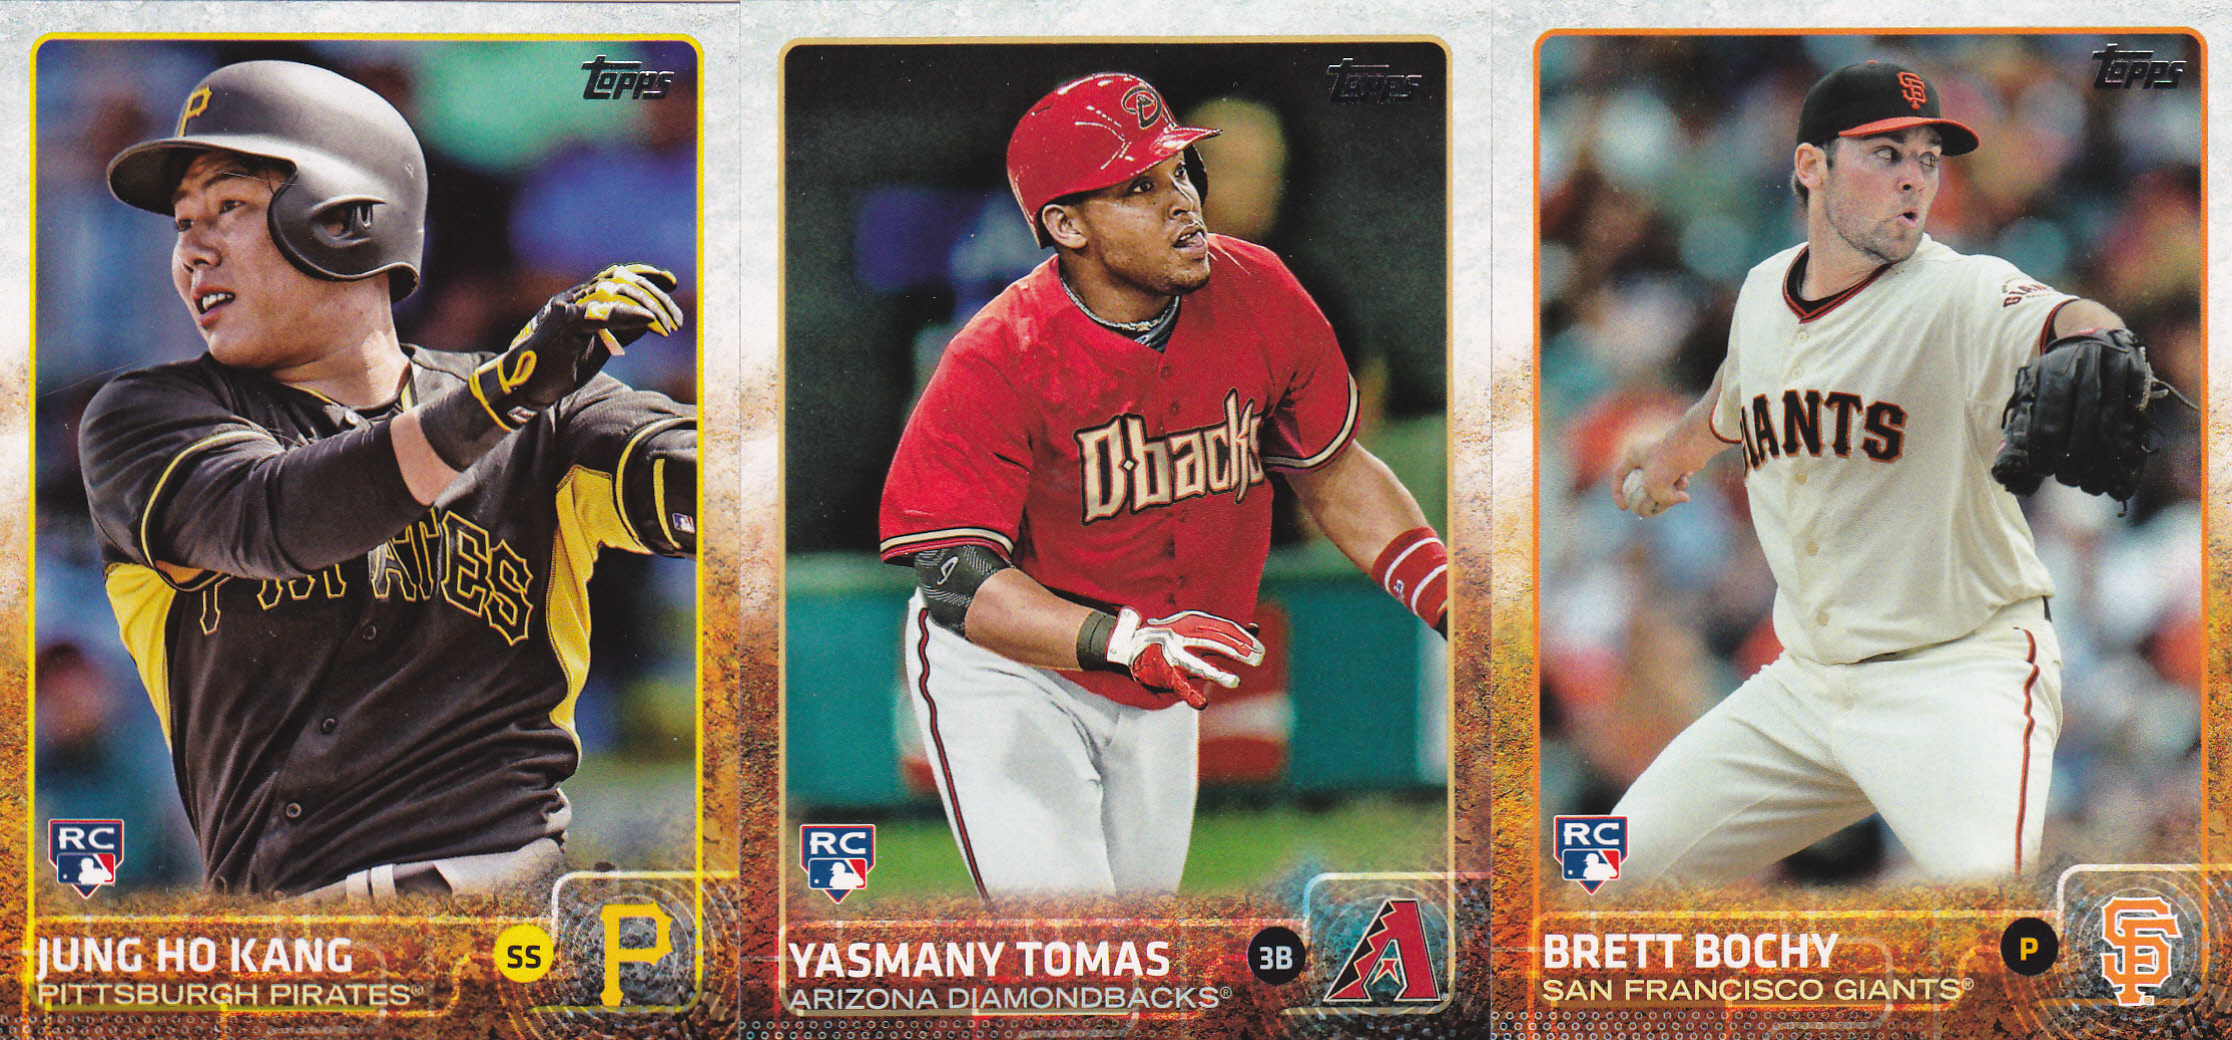 2015 Topps Series 2 Hta Jumbo Box Base Cards Lifetime